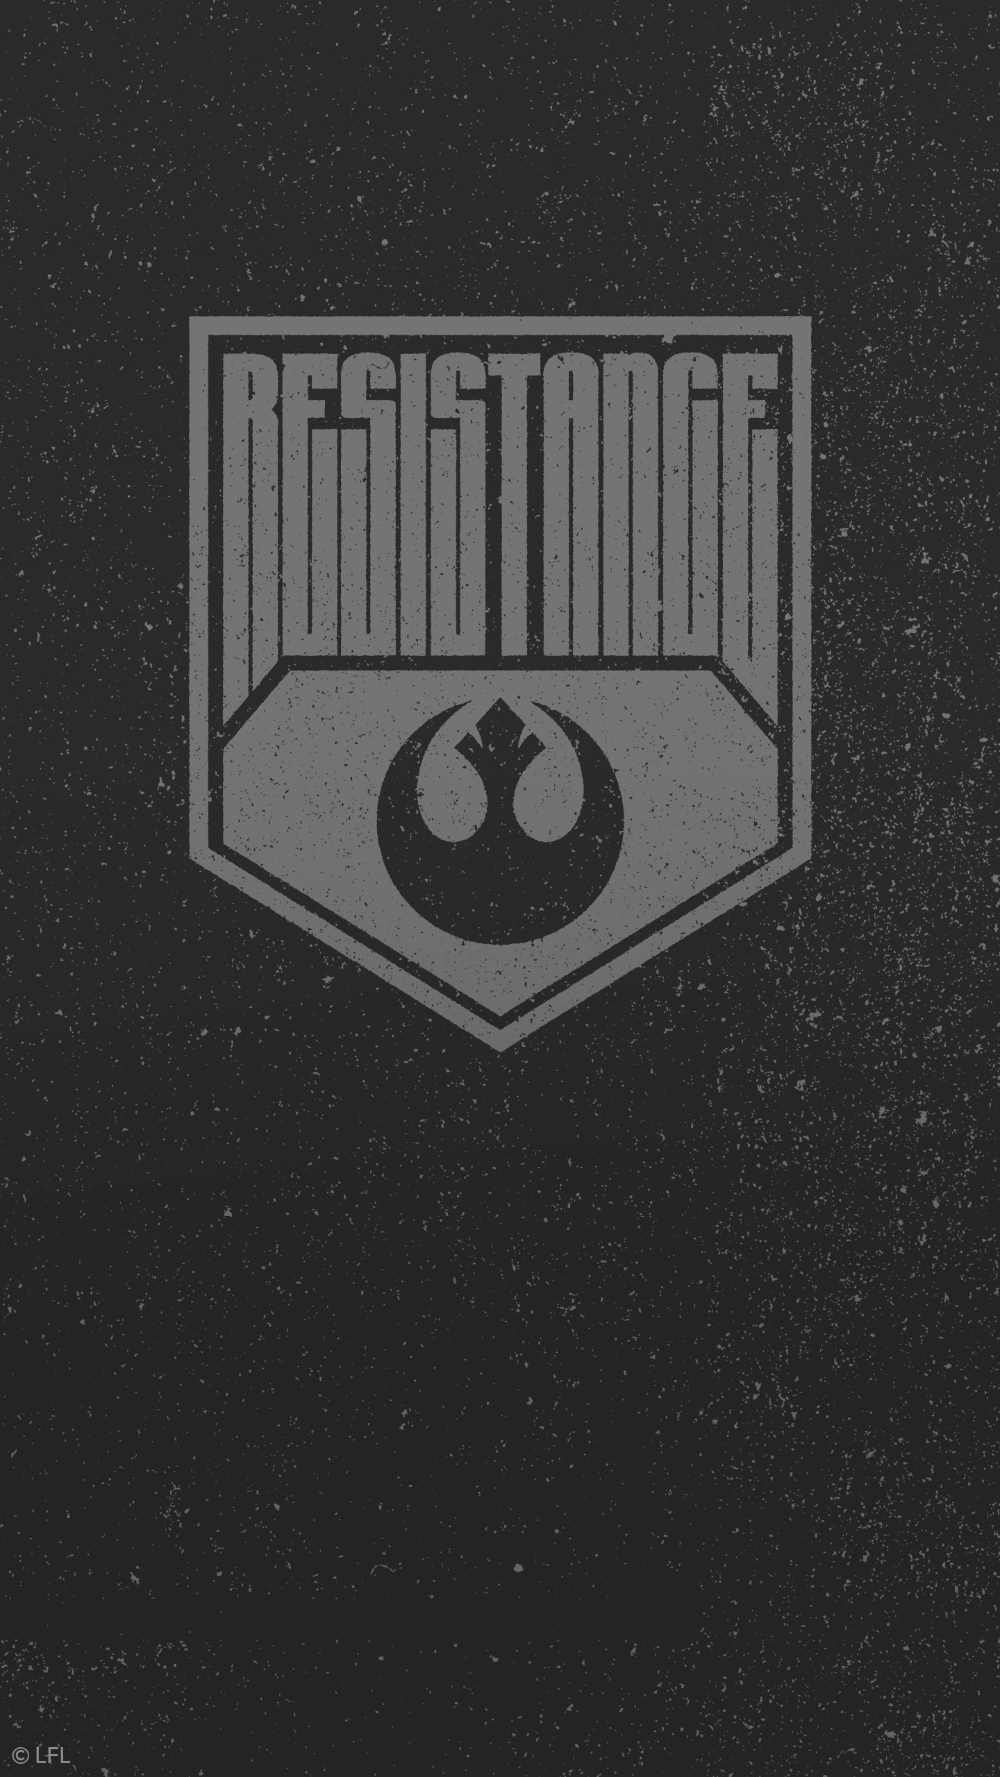 Star Wars Resistance Wallpapers Wallpaper Cave Iphone